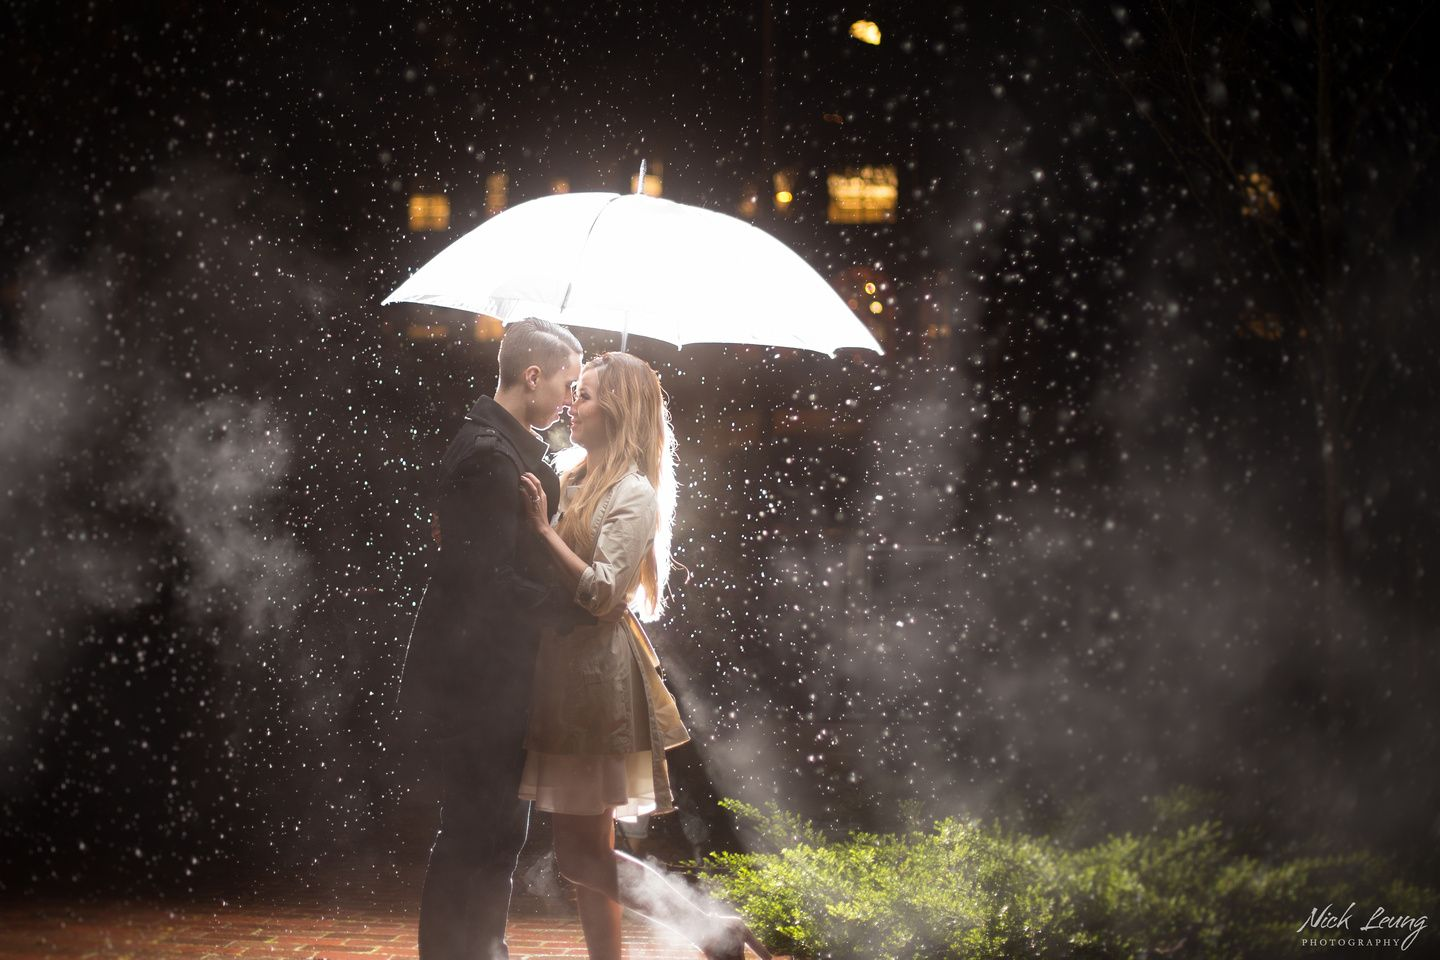 Night engagement session at UW - by Seattle based wedding photographer Nick Leung